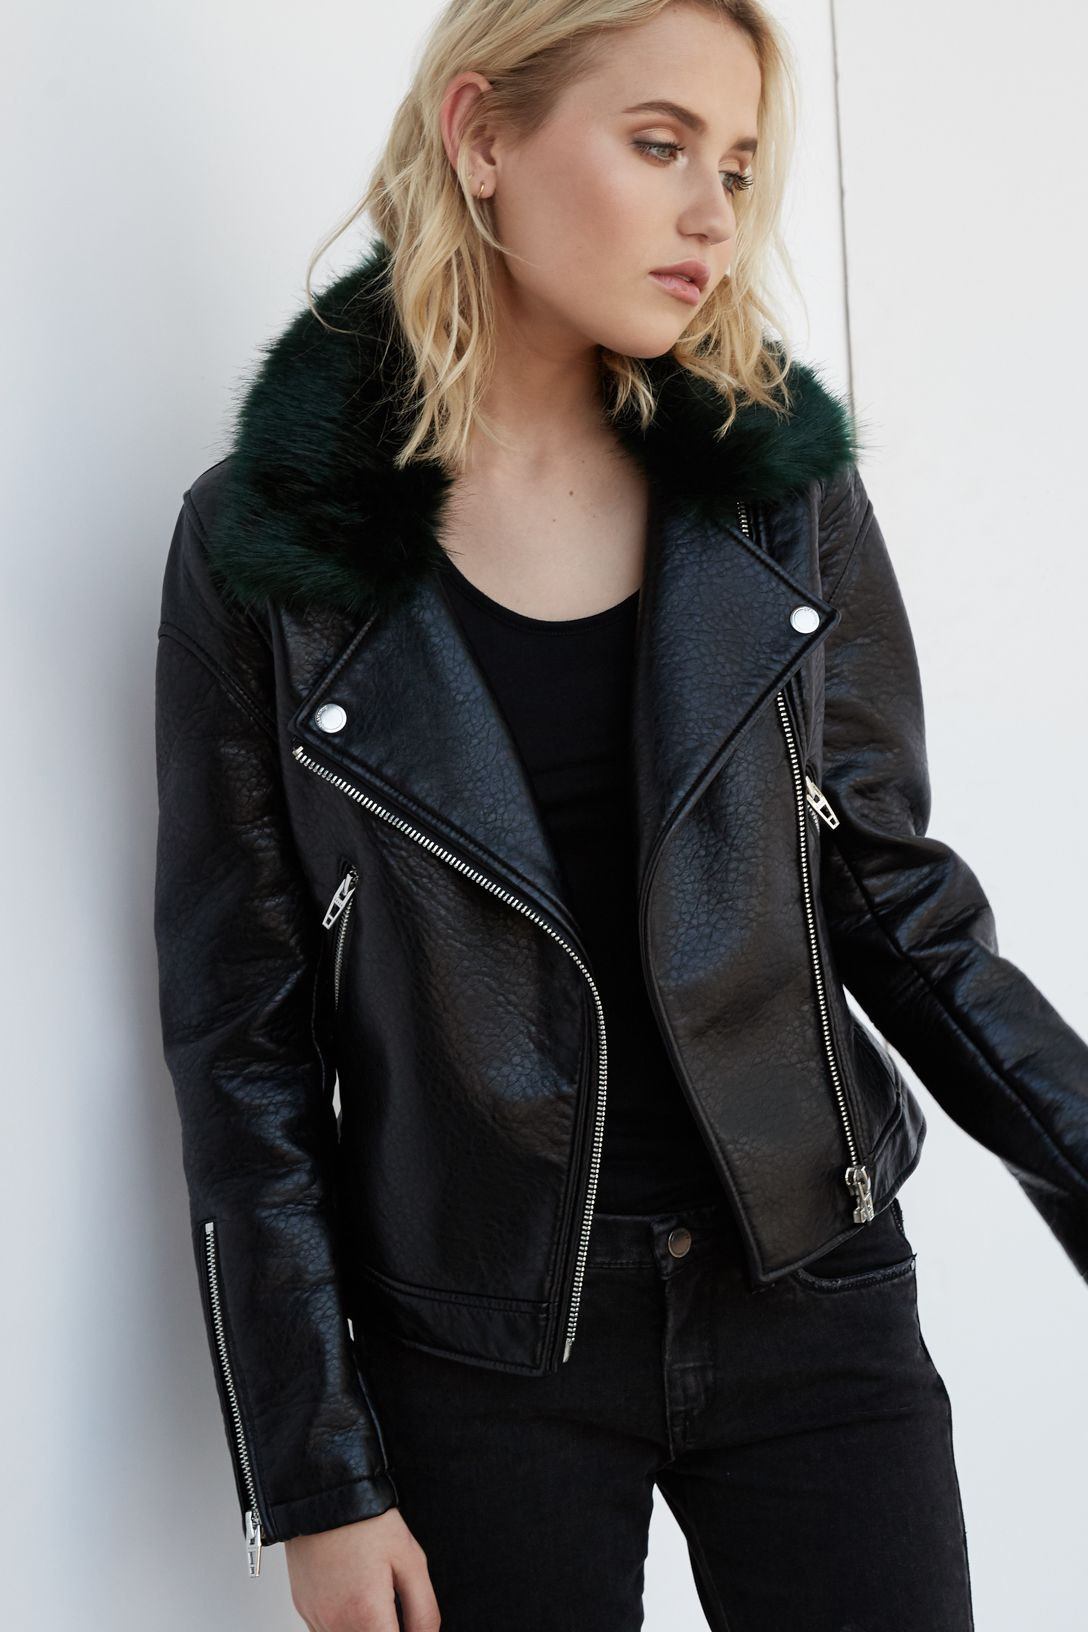 Faux fur and vegan leather jacket from Blank NYC